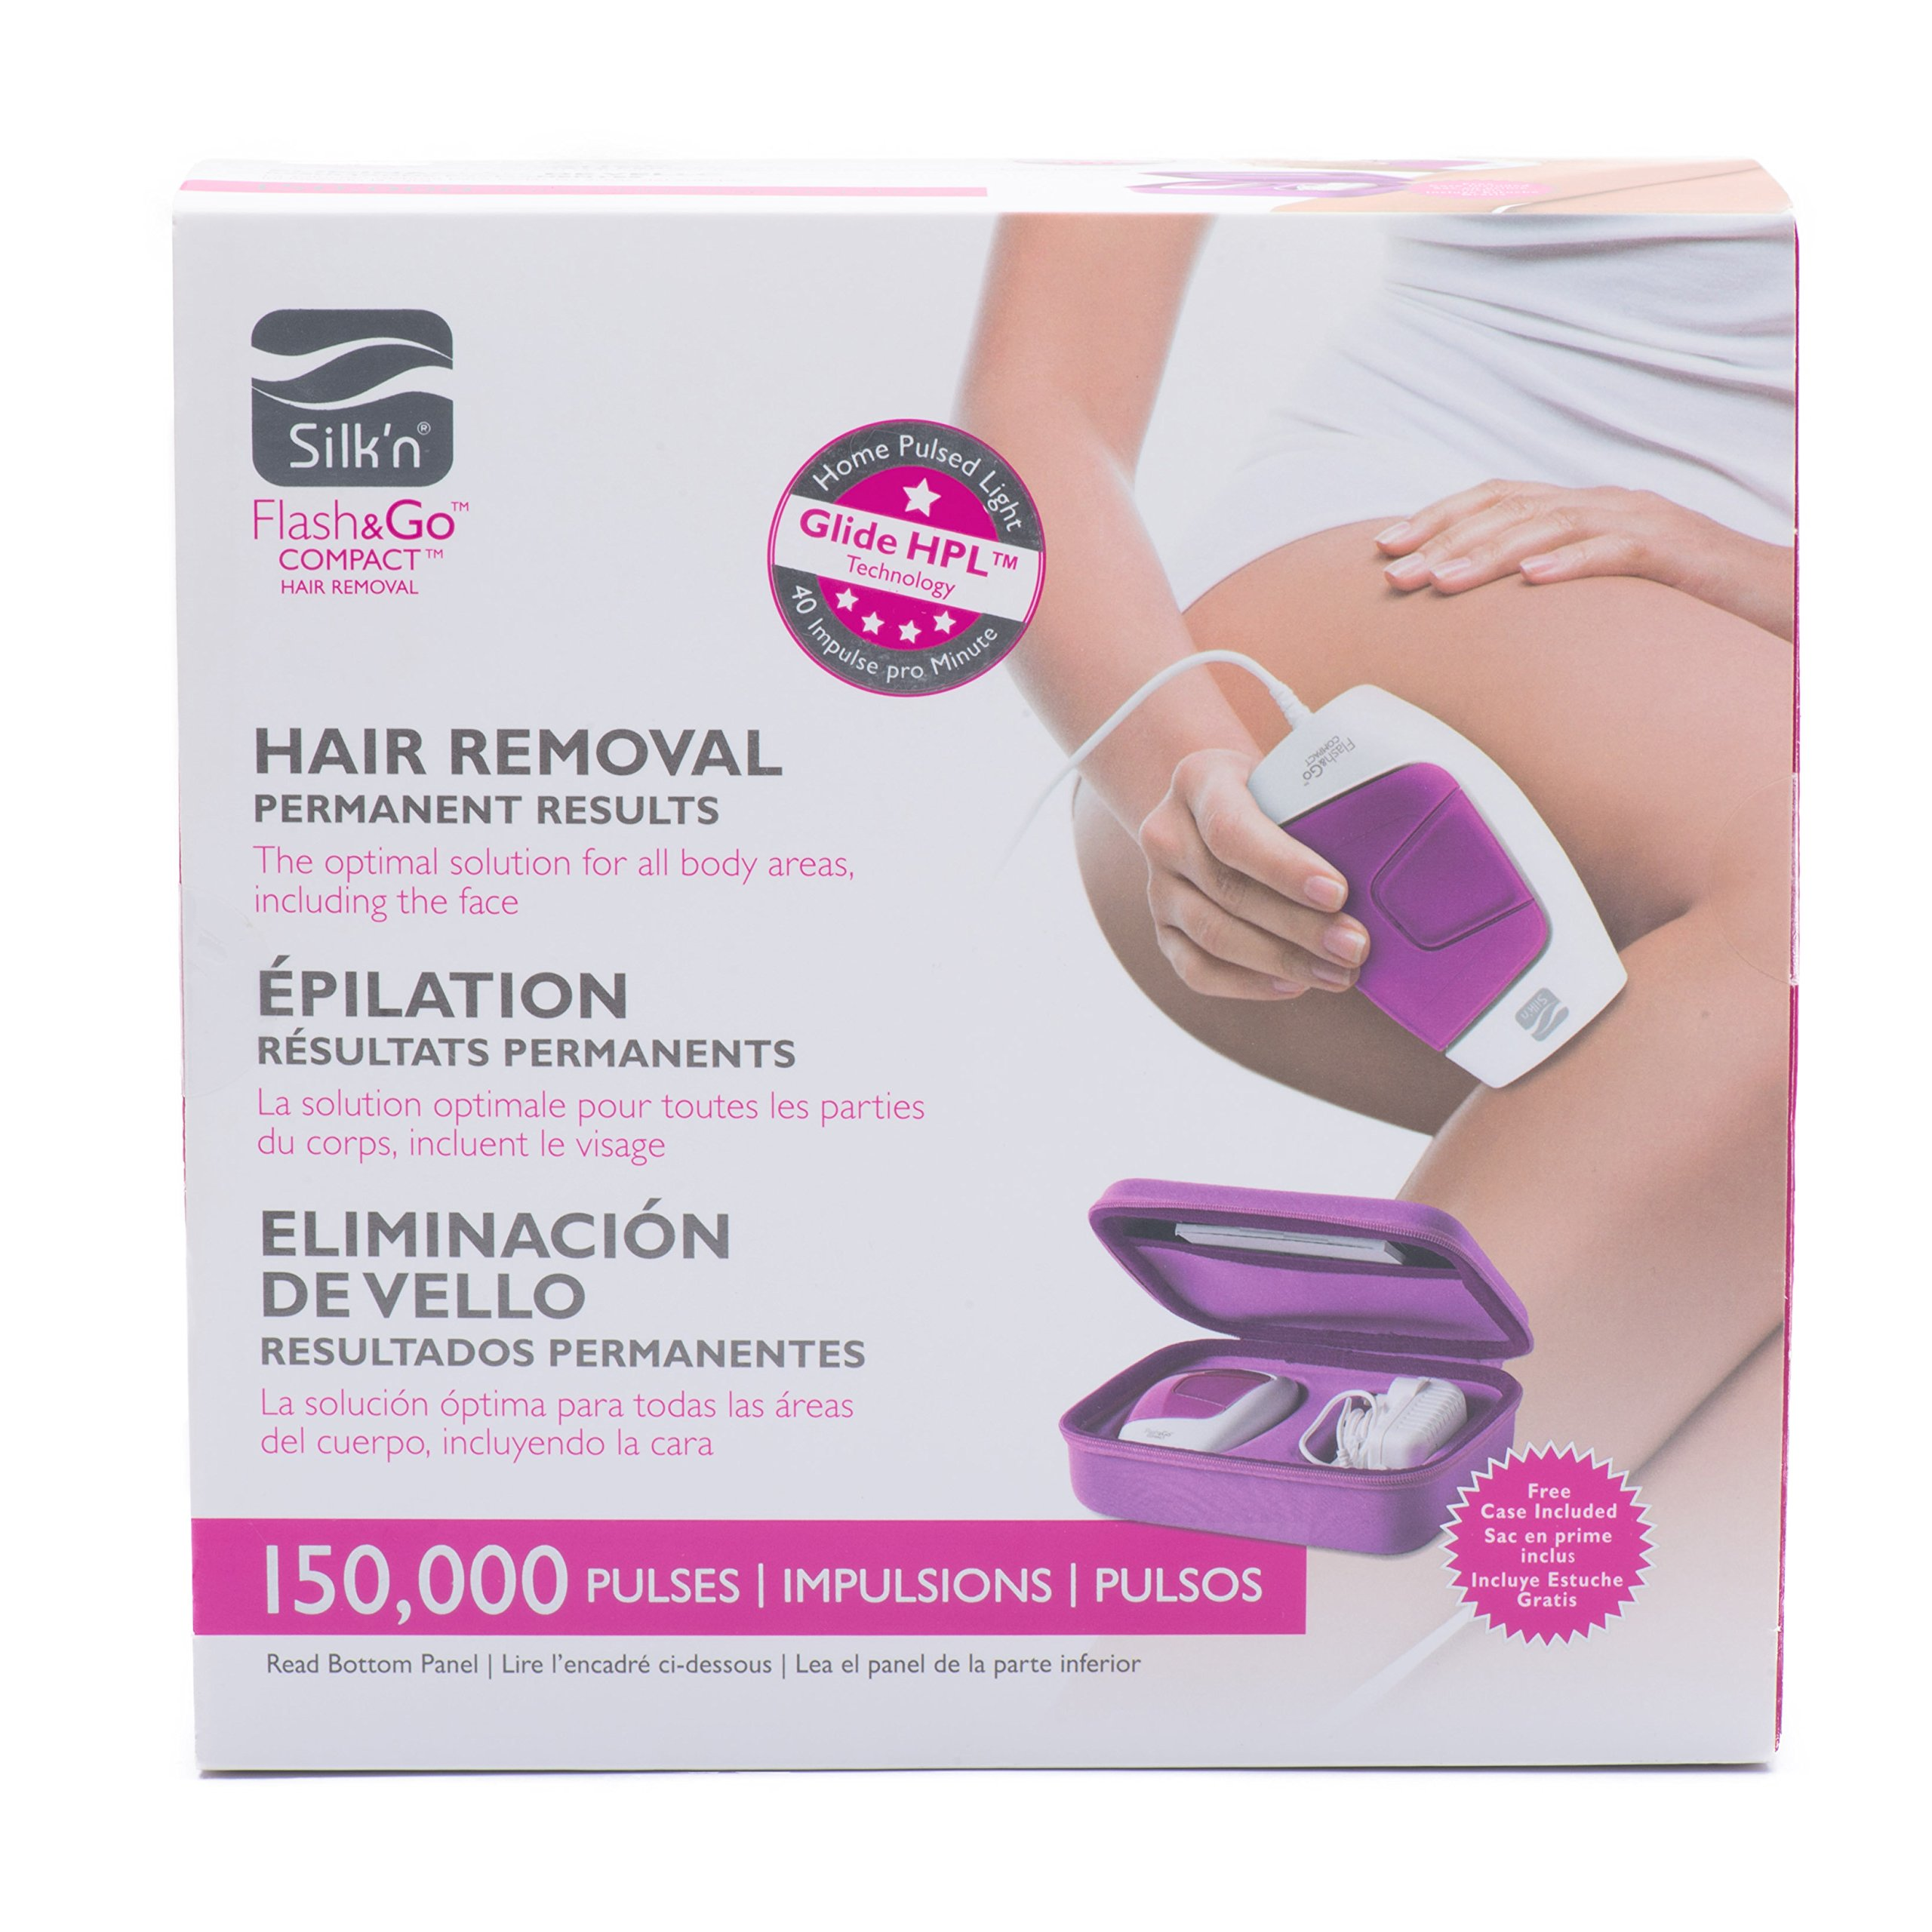 Silk'n Flash&Go Compact Laser Hair Removal Device and Trimmer by Silk'n (Image #7)